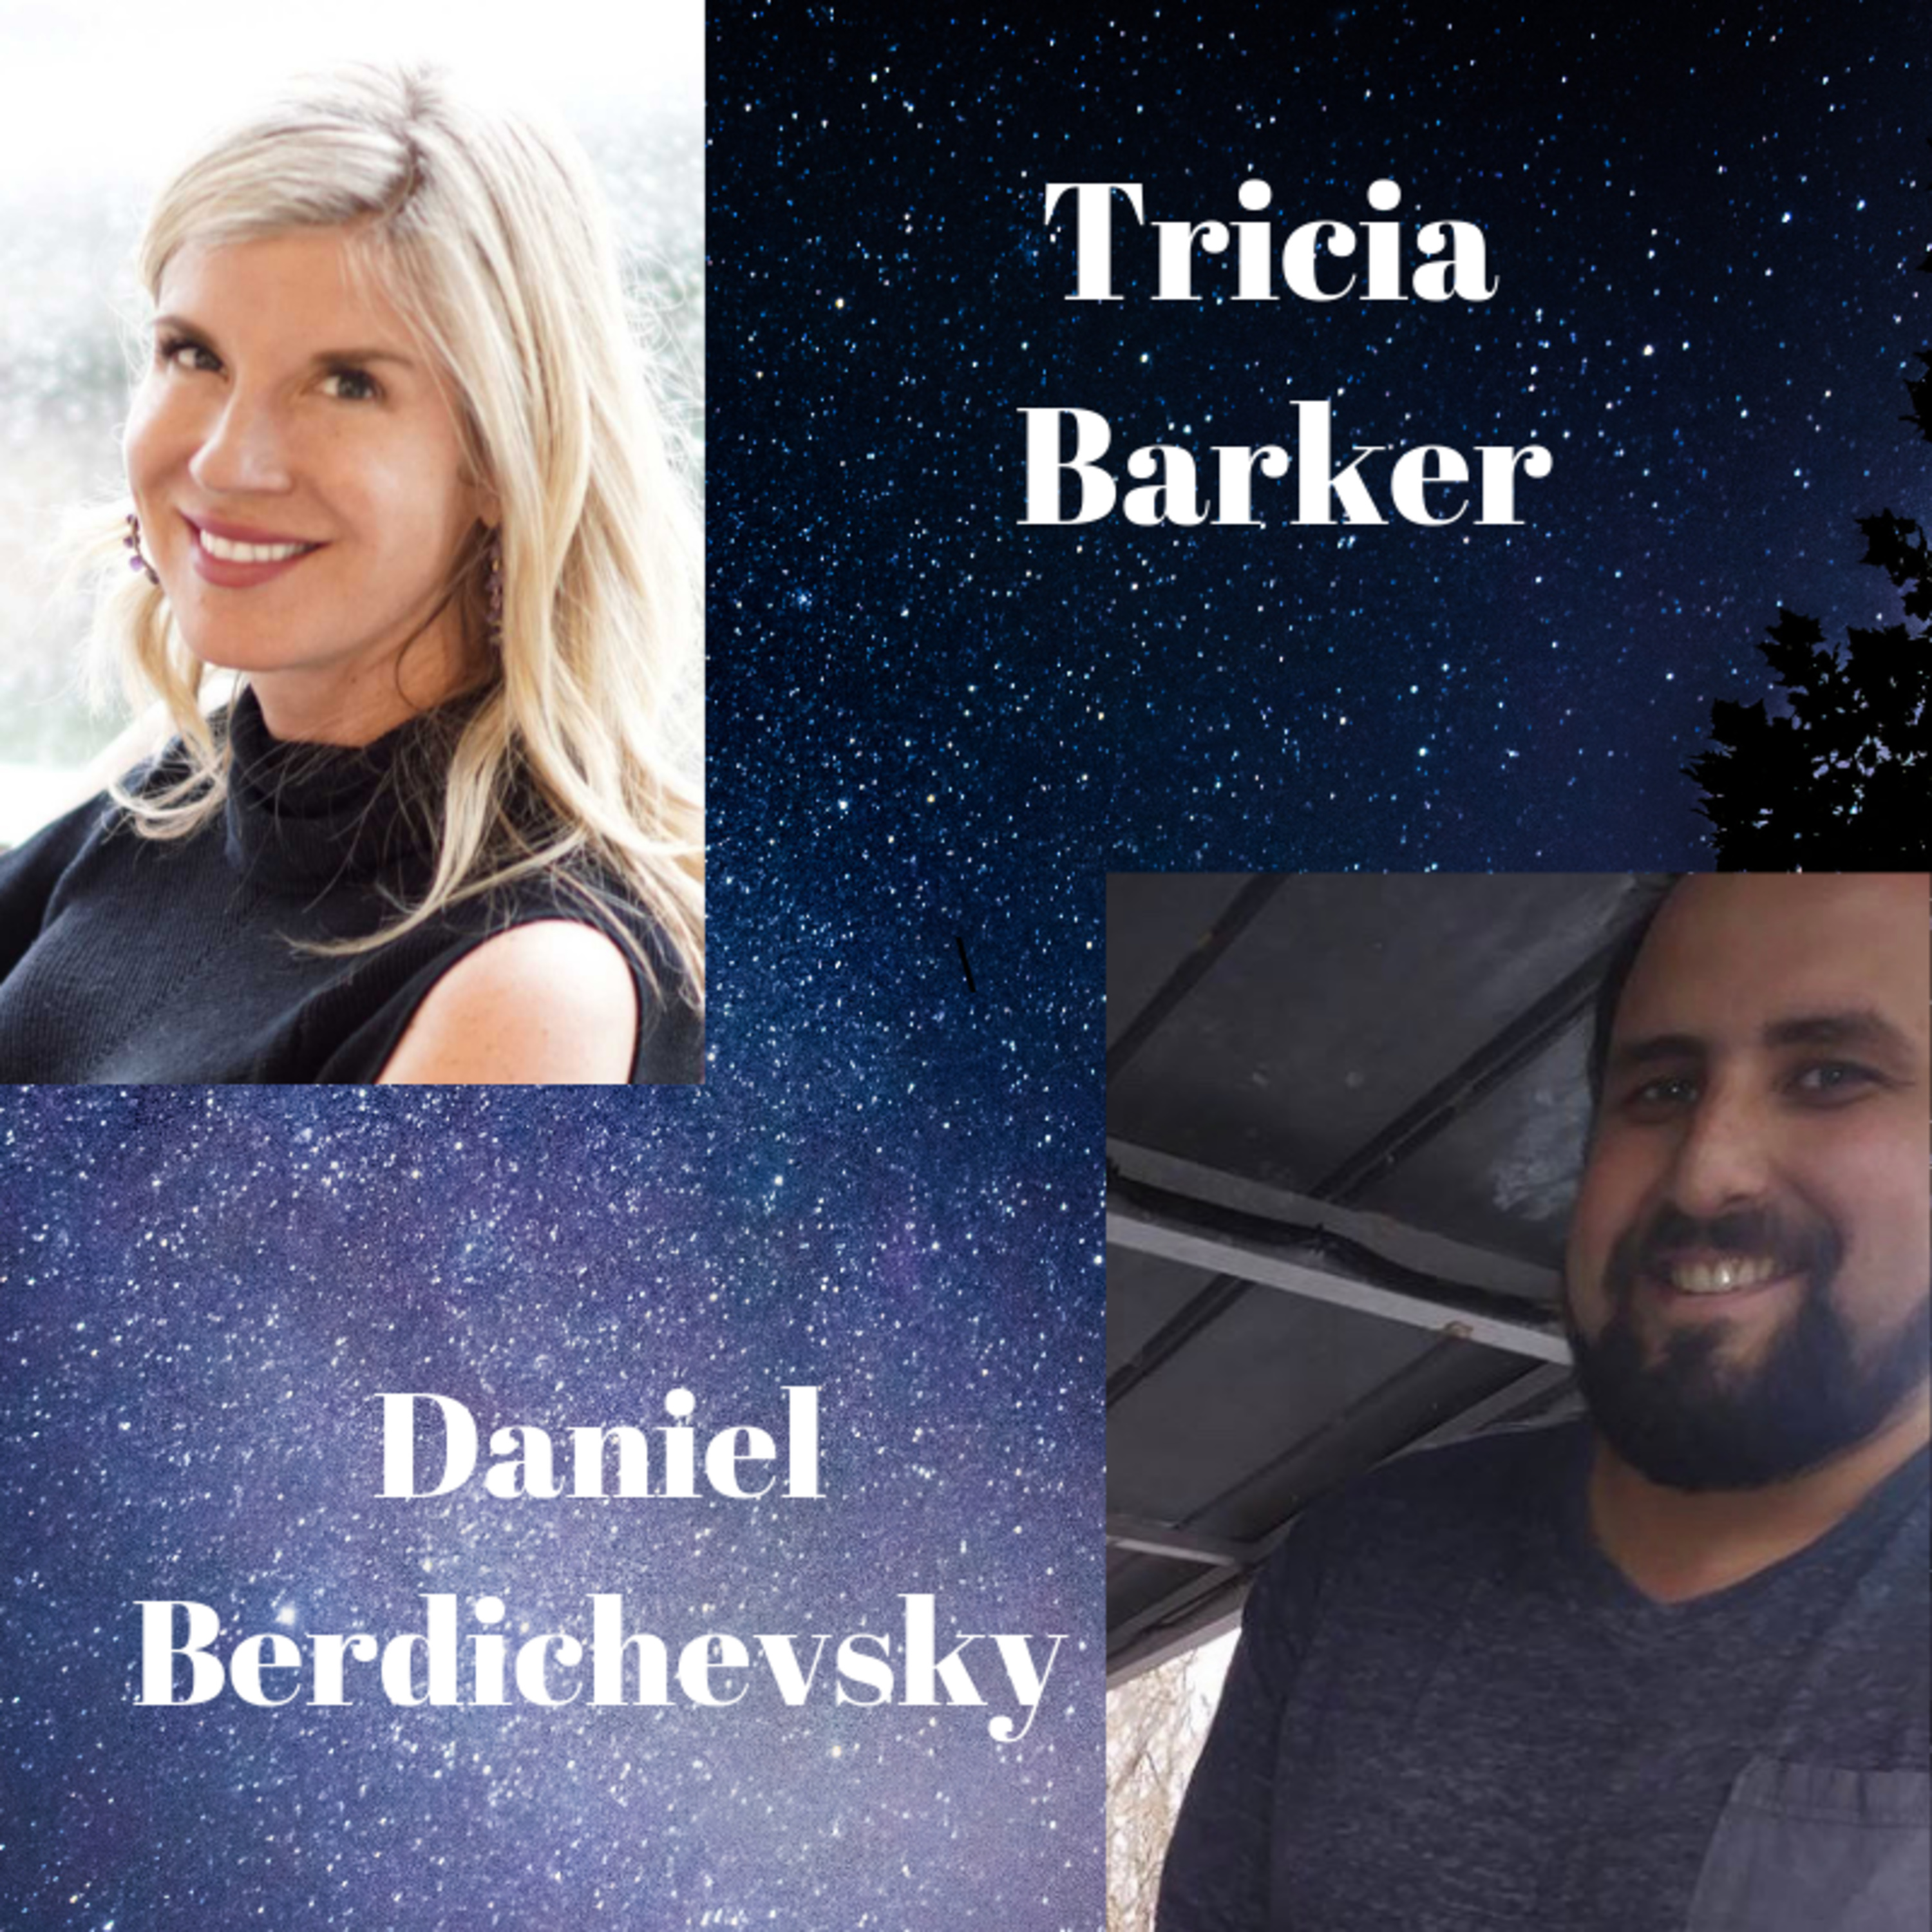 S2 Ep. 17 --Daniel Berdichevsky: Tricia Barker's Conversations with Near-Death Experiencers